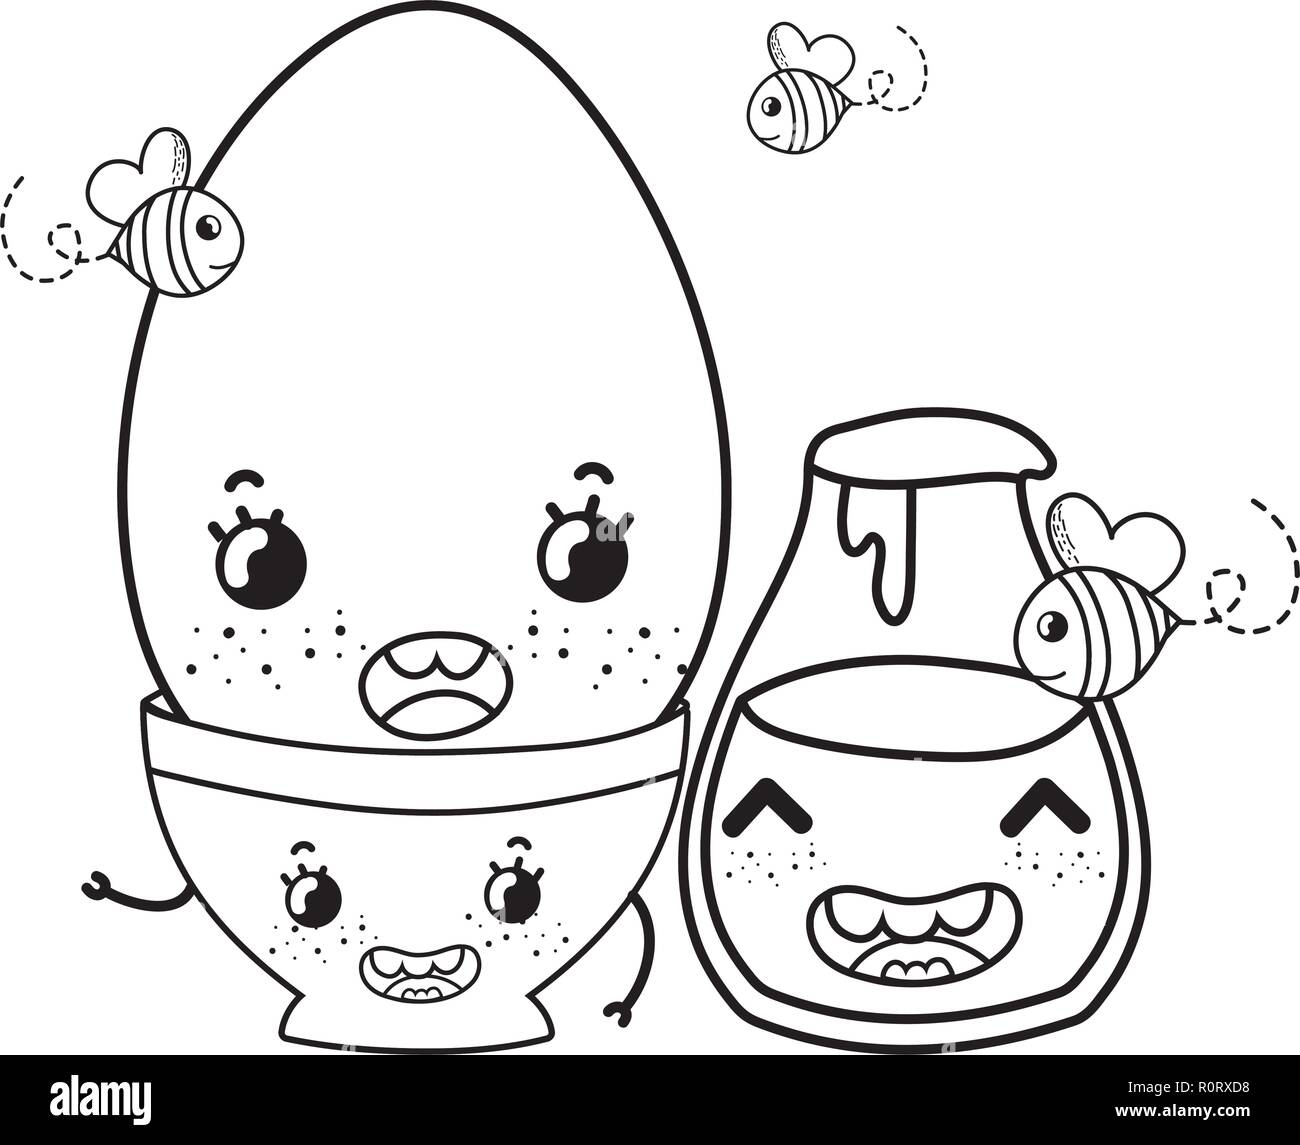 Kitchen And Food Kawaii Cartoons In Black And White Stock